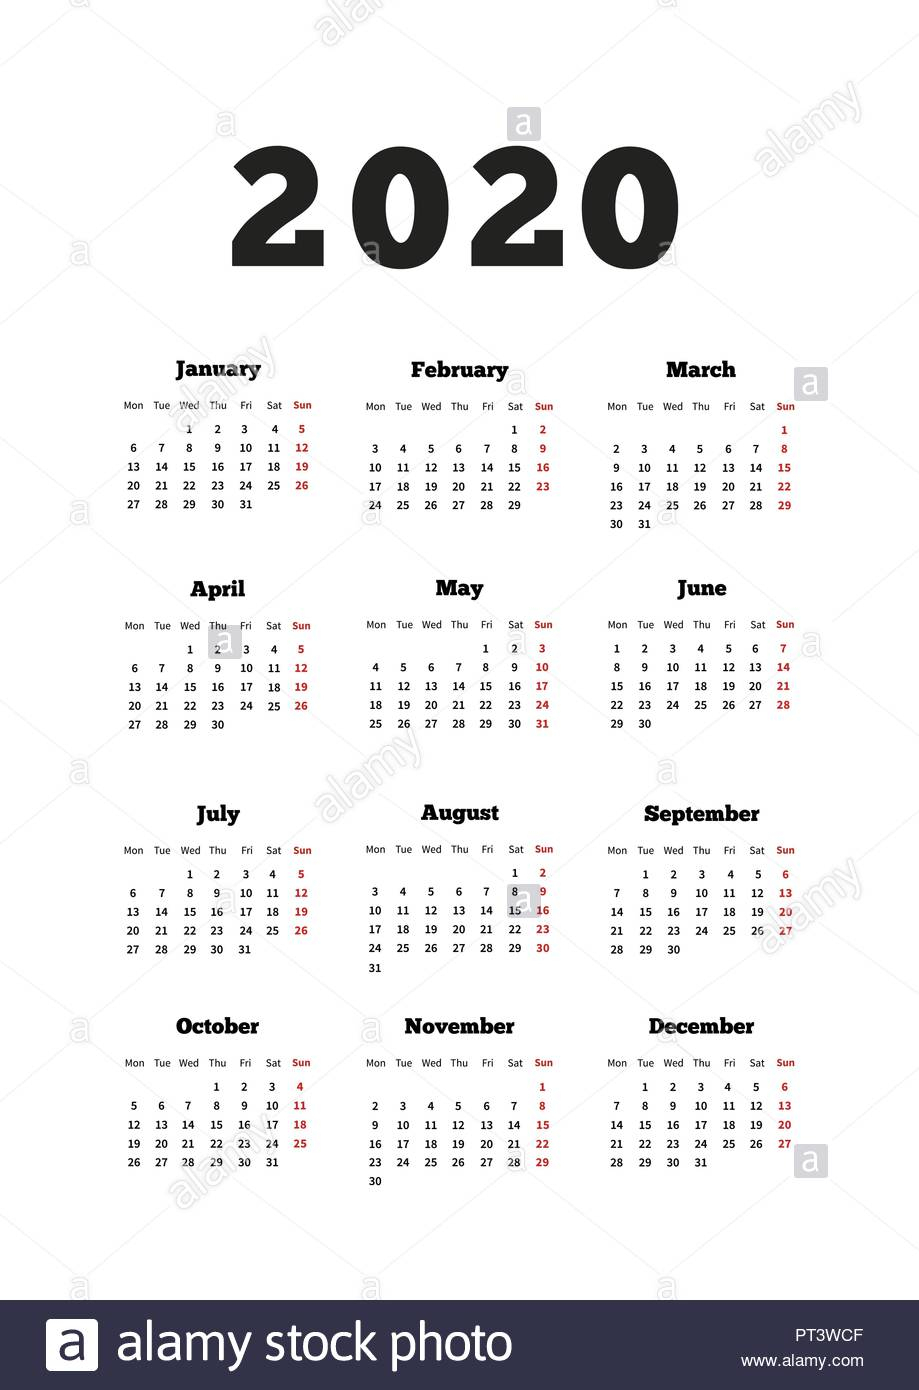 Calendar On 2020 Year With Week Starting From Monday, A4 Size pertaining to 2020 Calendar Starting On Monday